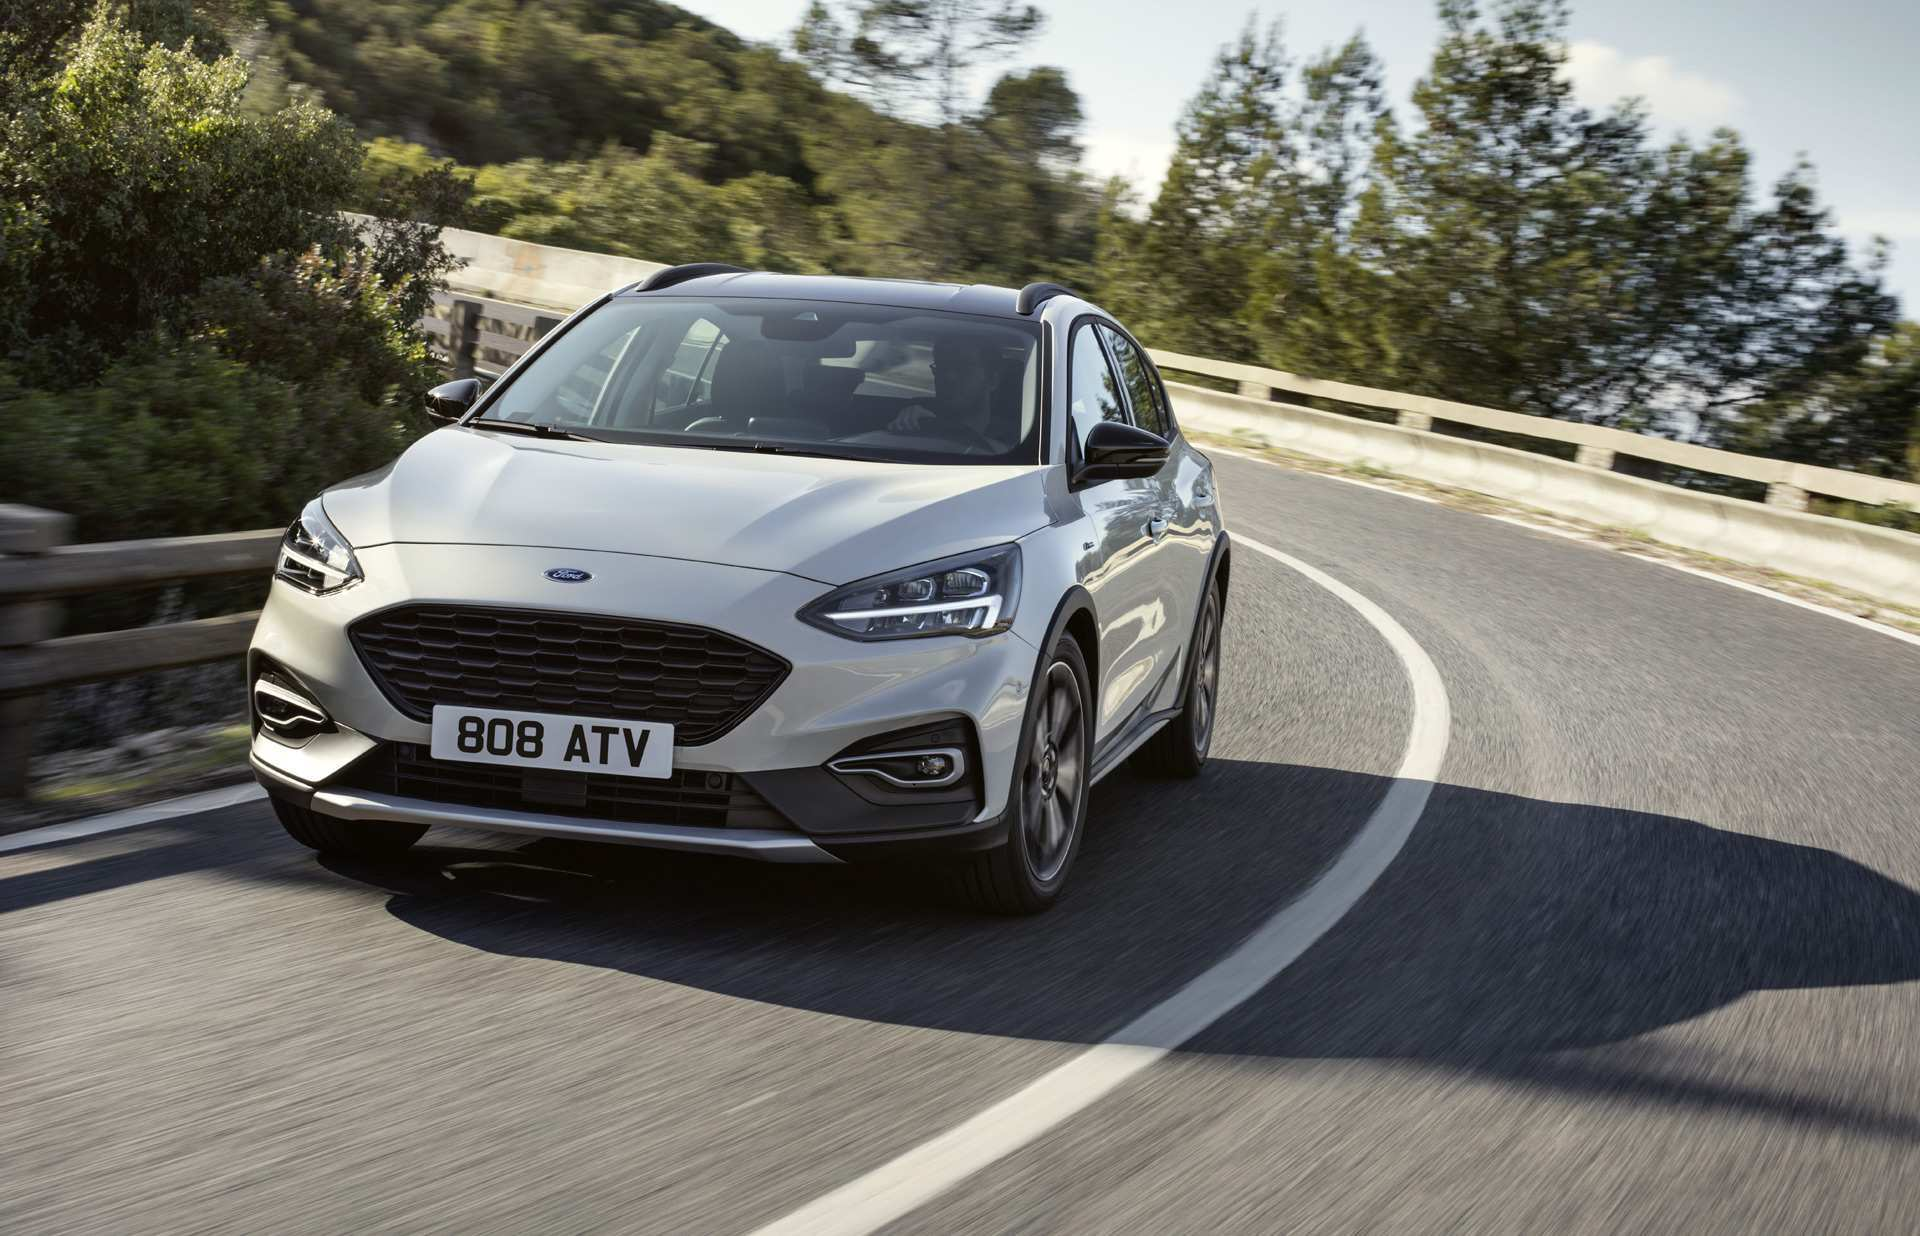 17 The Best 2020 Ford Focus Wallpaper